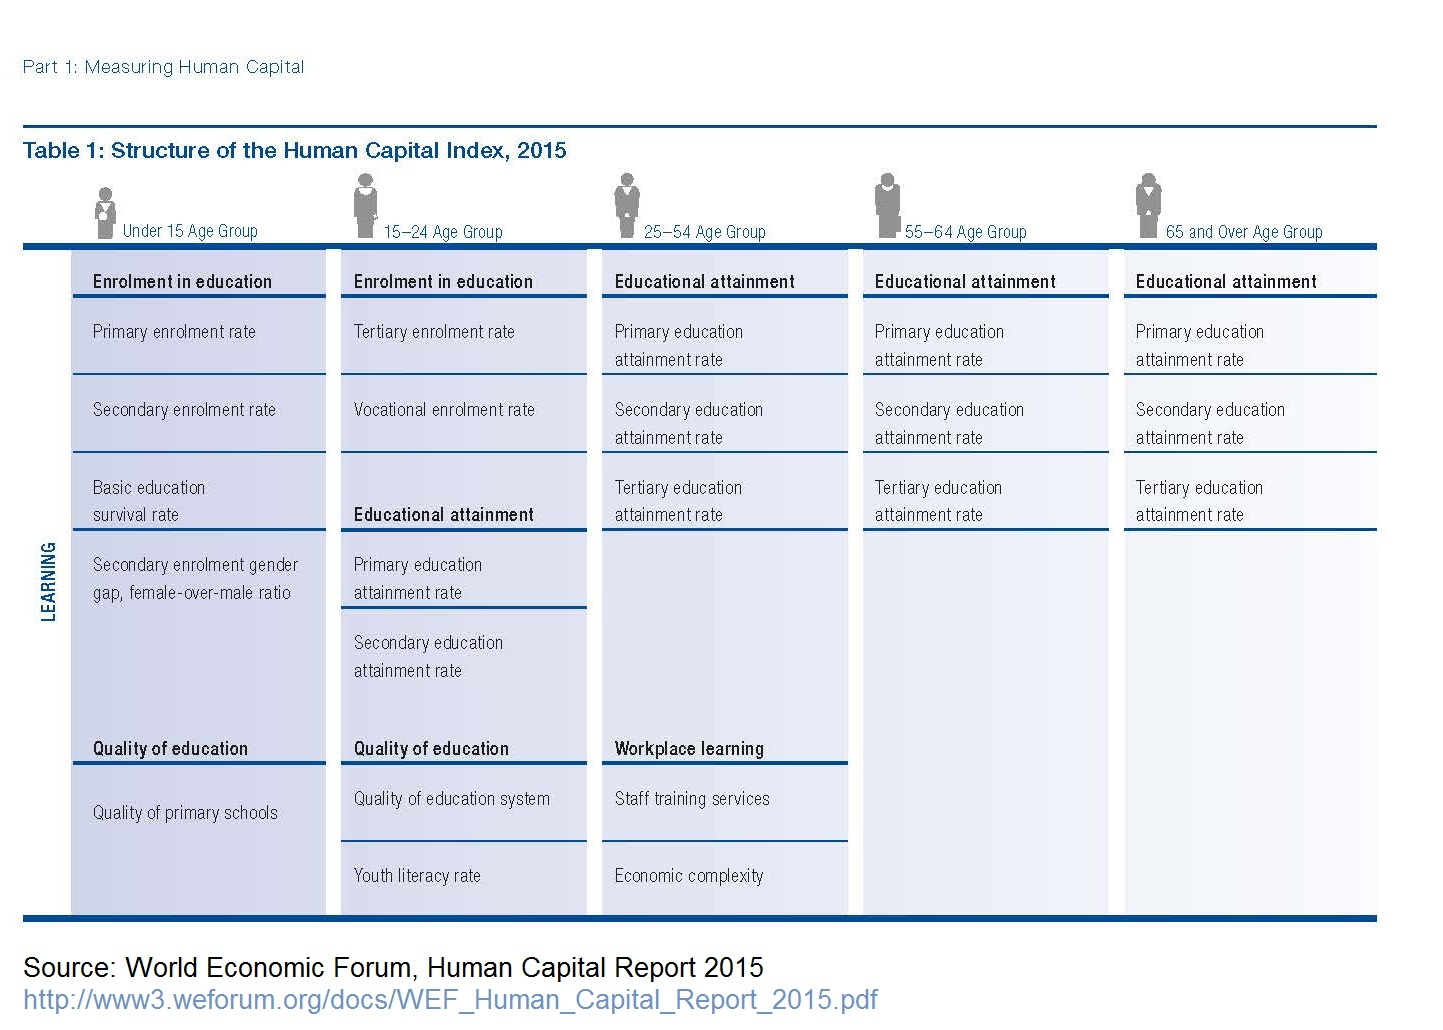 WEF_Human_Capital_Report_2015 - education table p 4